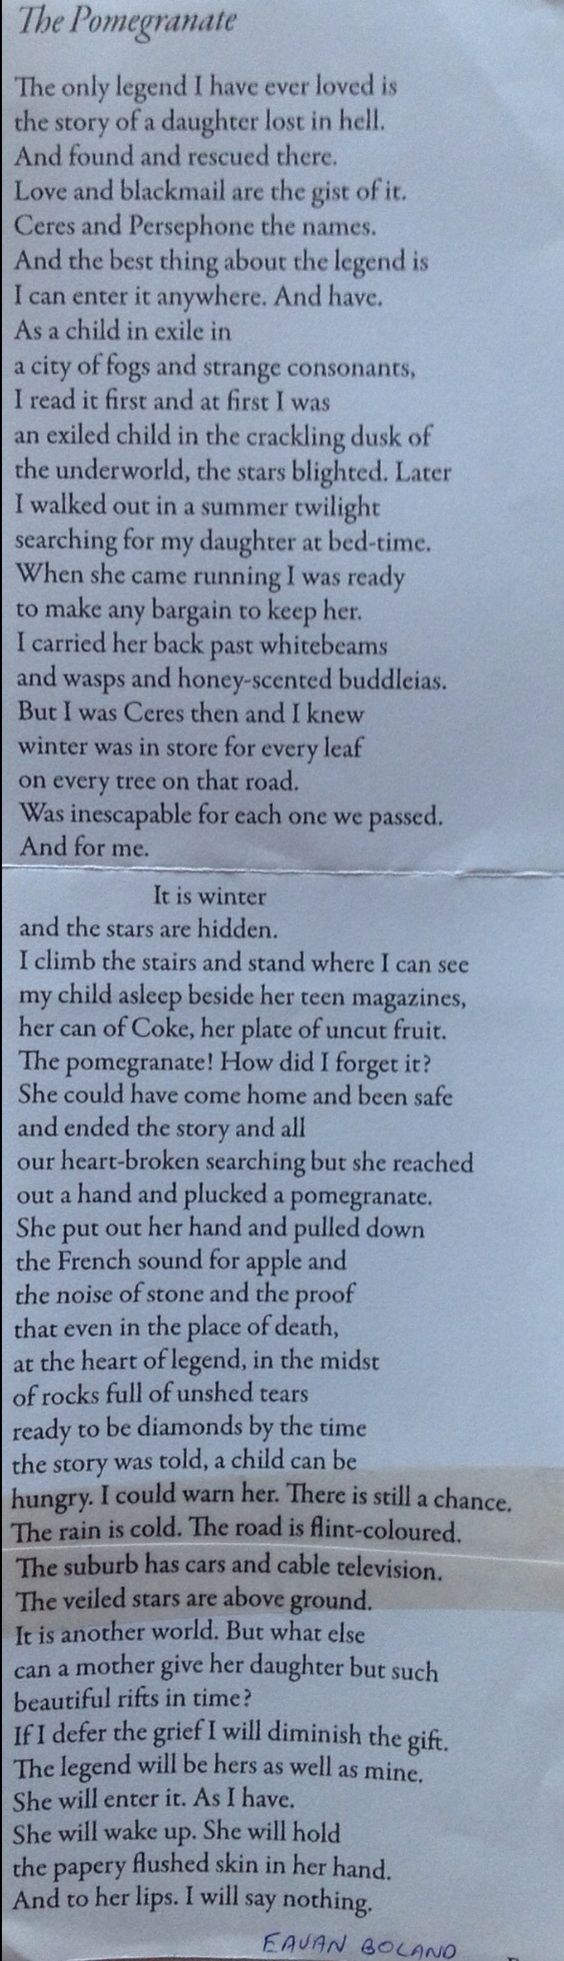 Eavan Boland poem, The Pomegranate, based on the Persephone/Demeter myth.